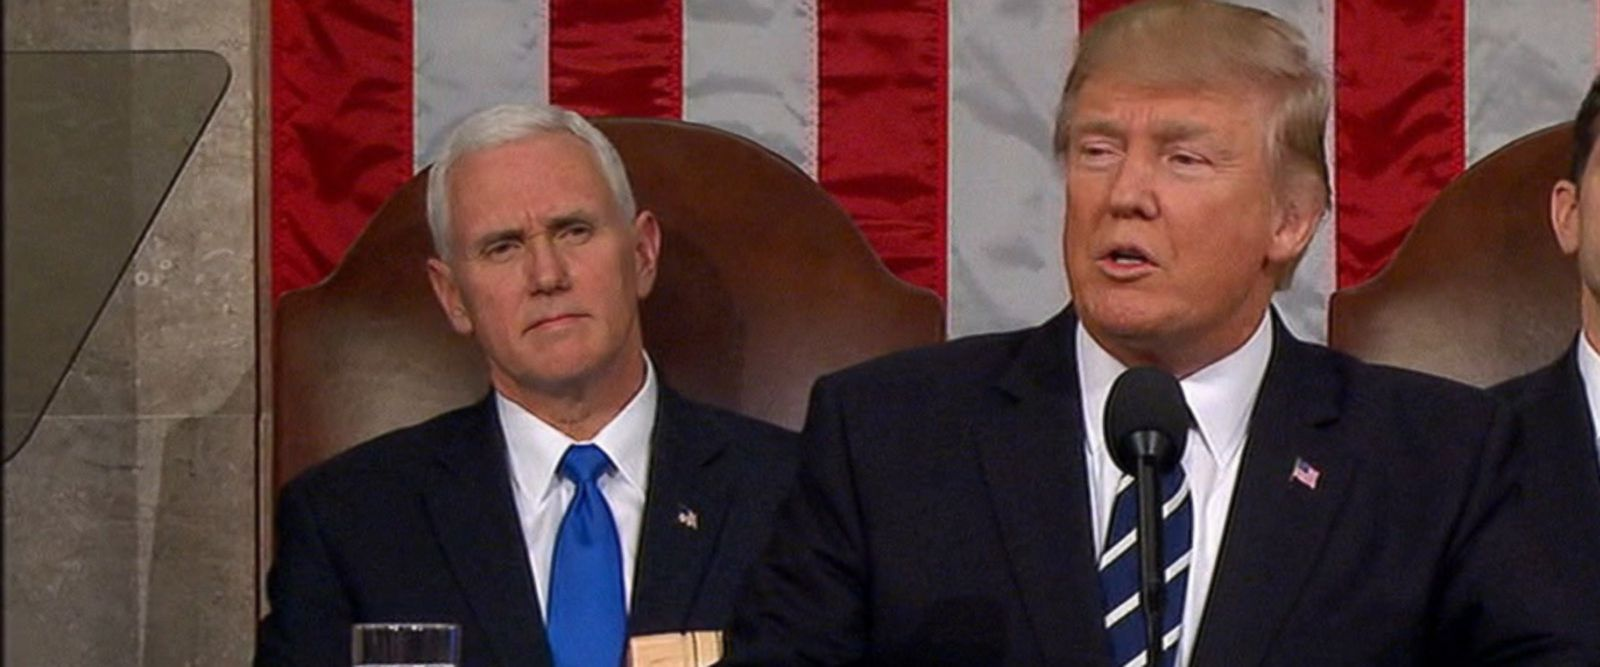 VIDEO: Did President Trump change his tune in first address to Congress?